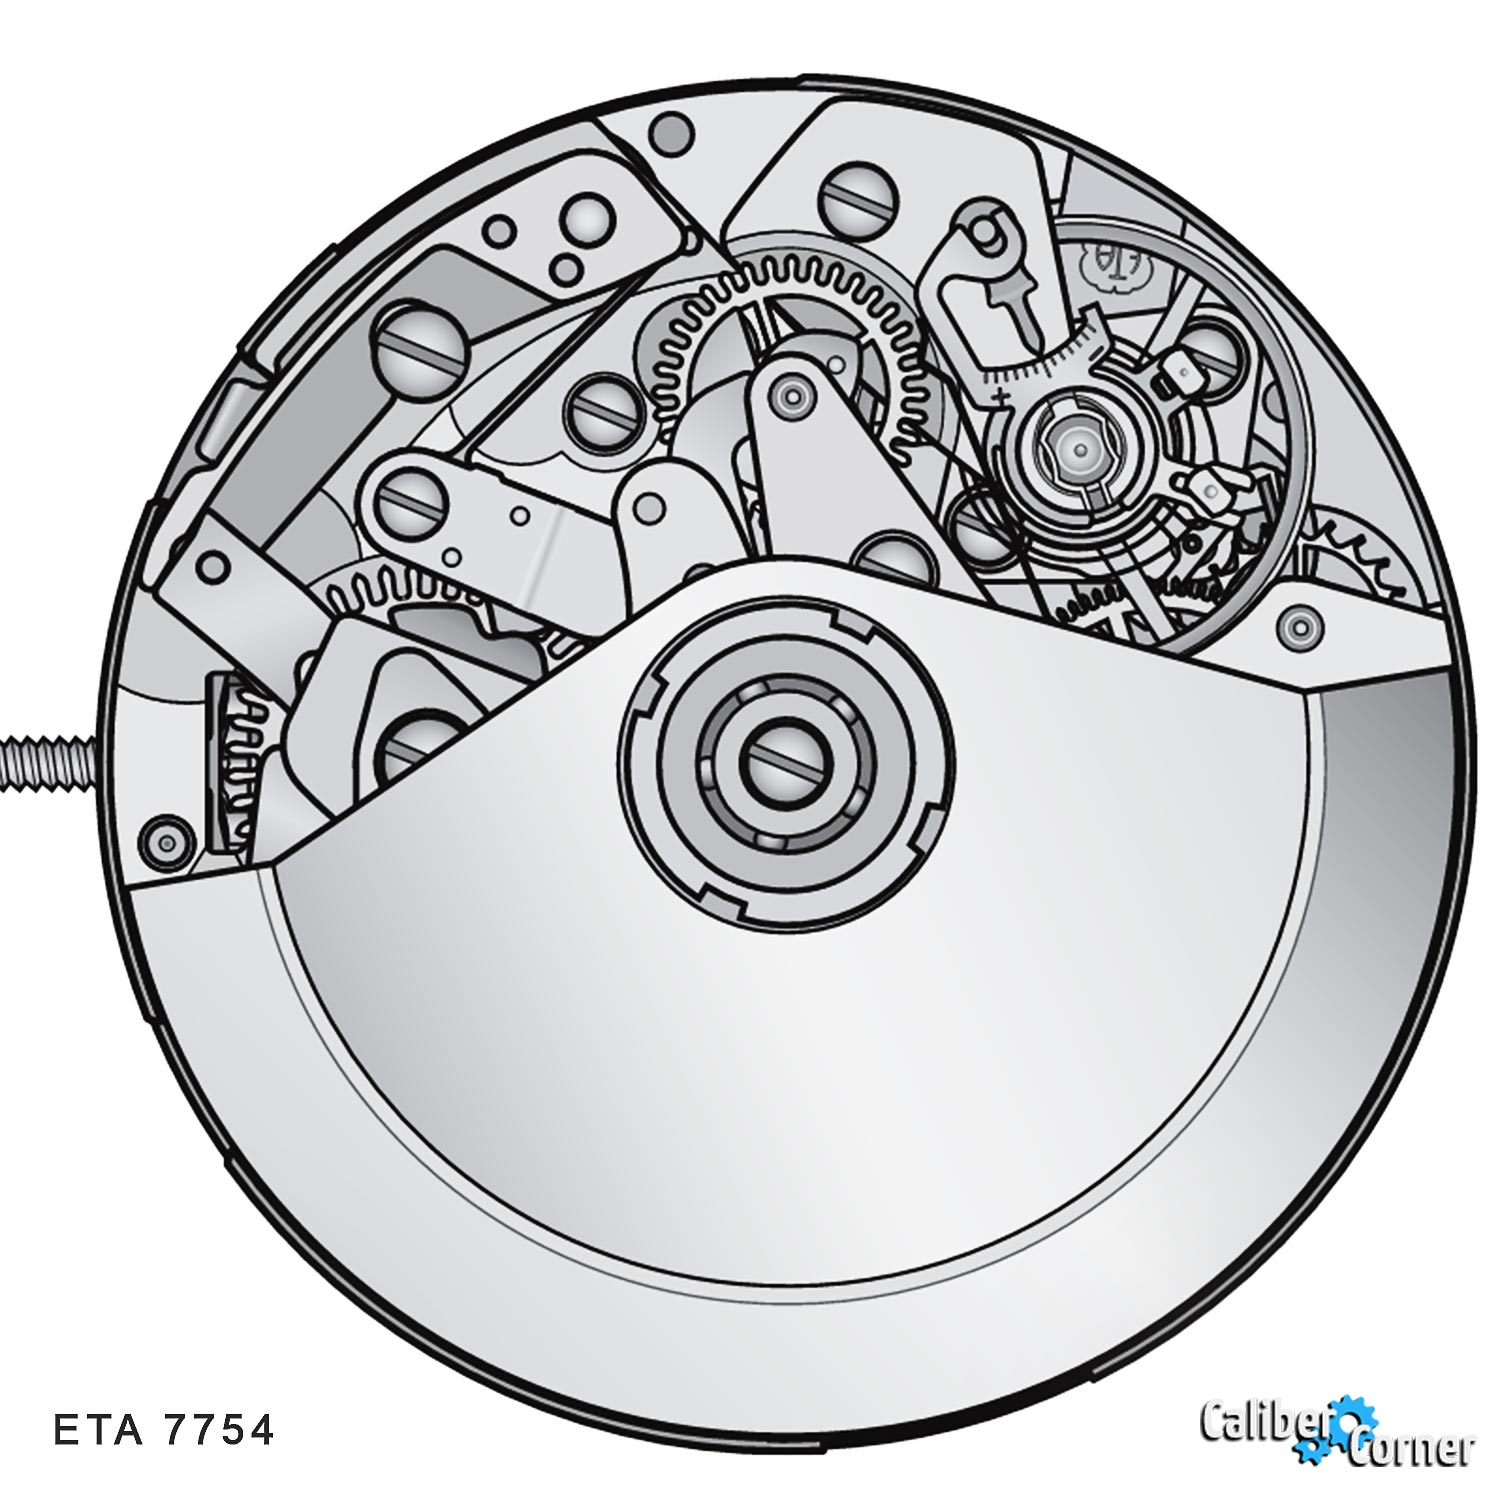 ETA caliber 7754 Drawing